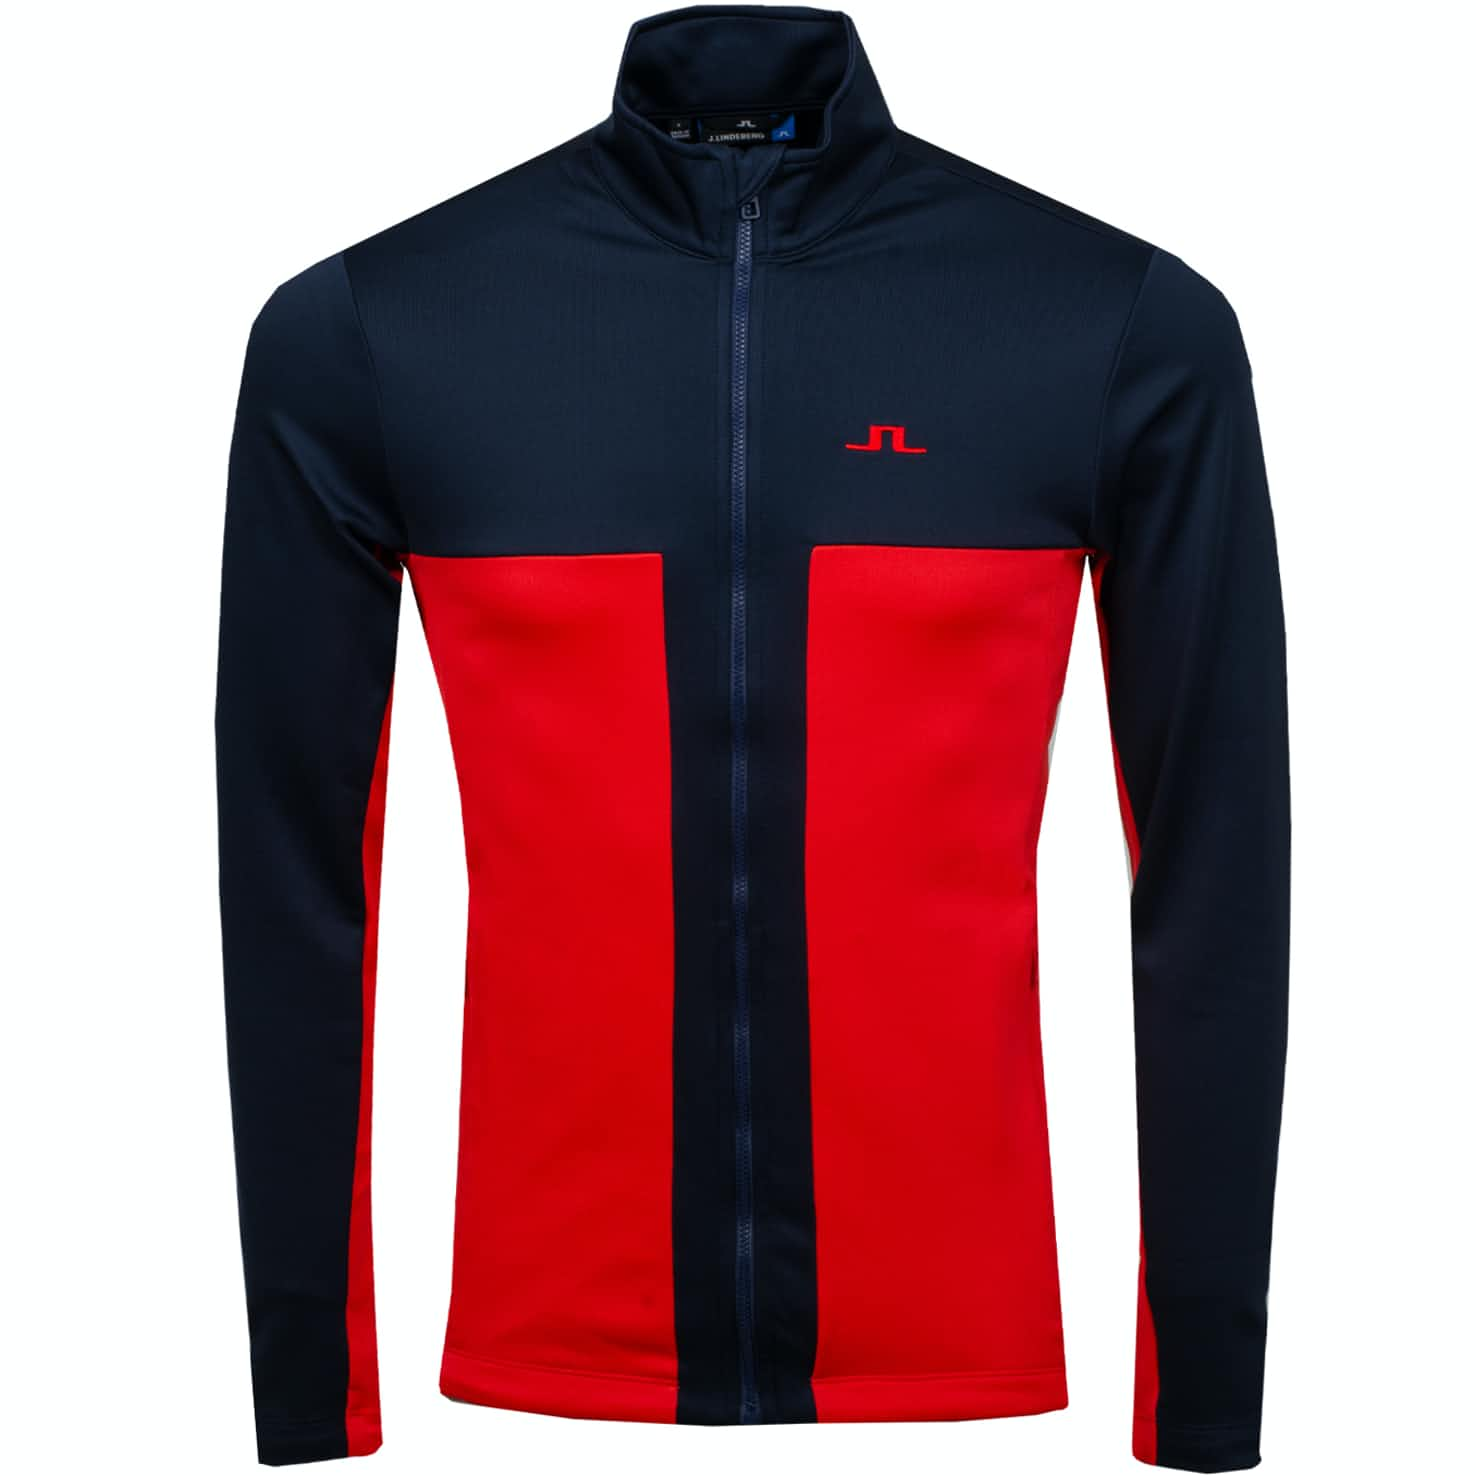 J.Lindeberg Baker TX Mid Jacket Racing Red - AW19